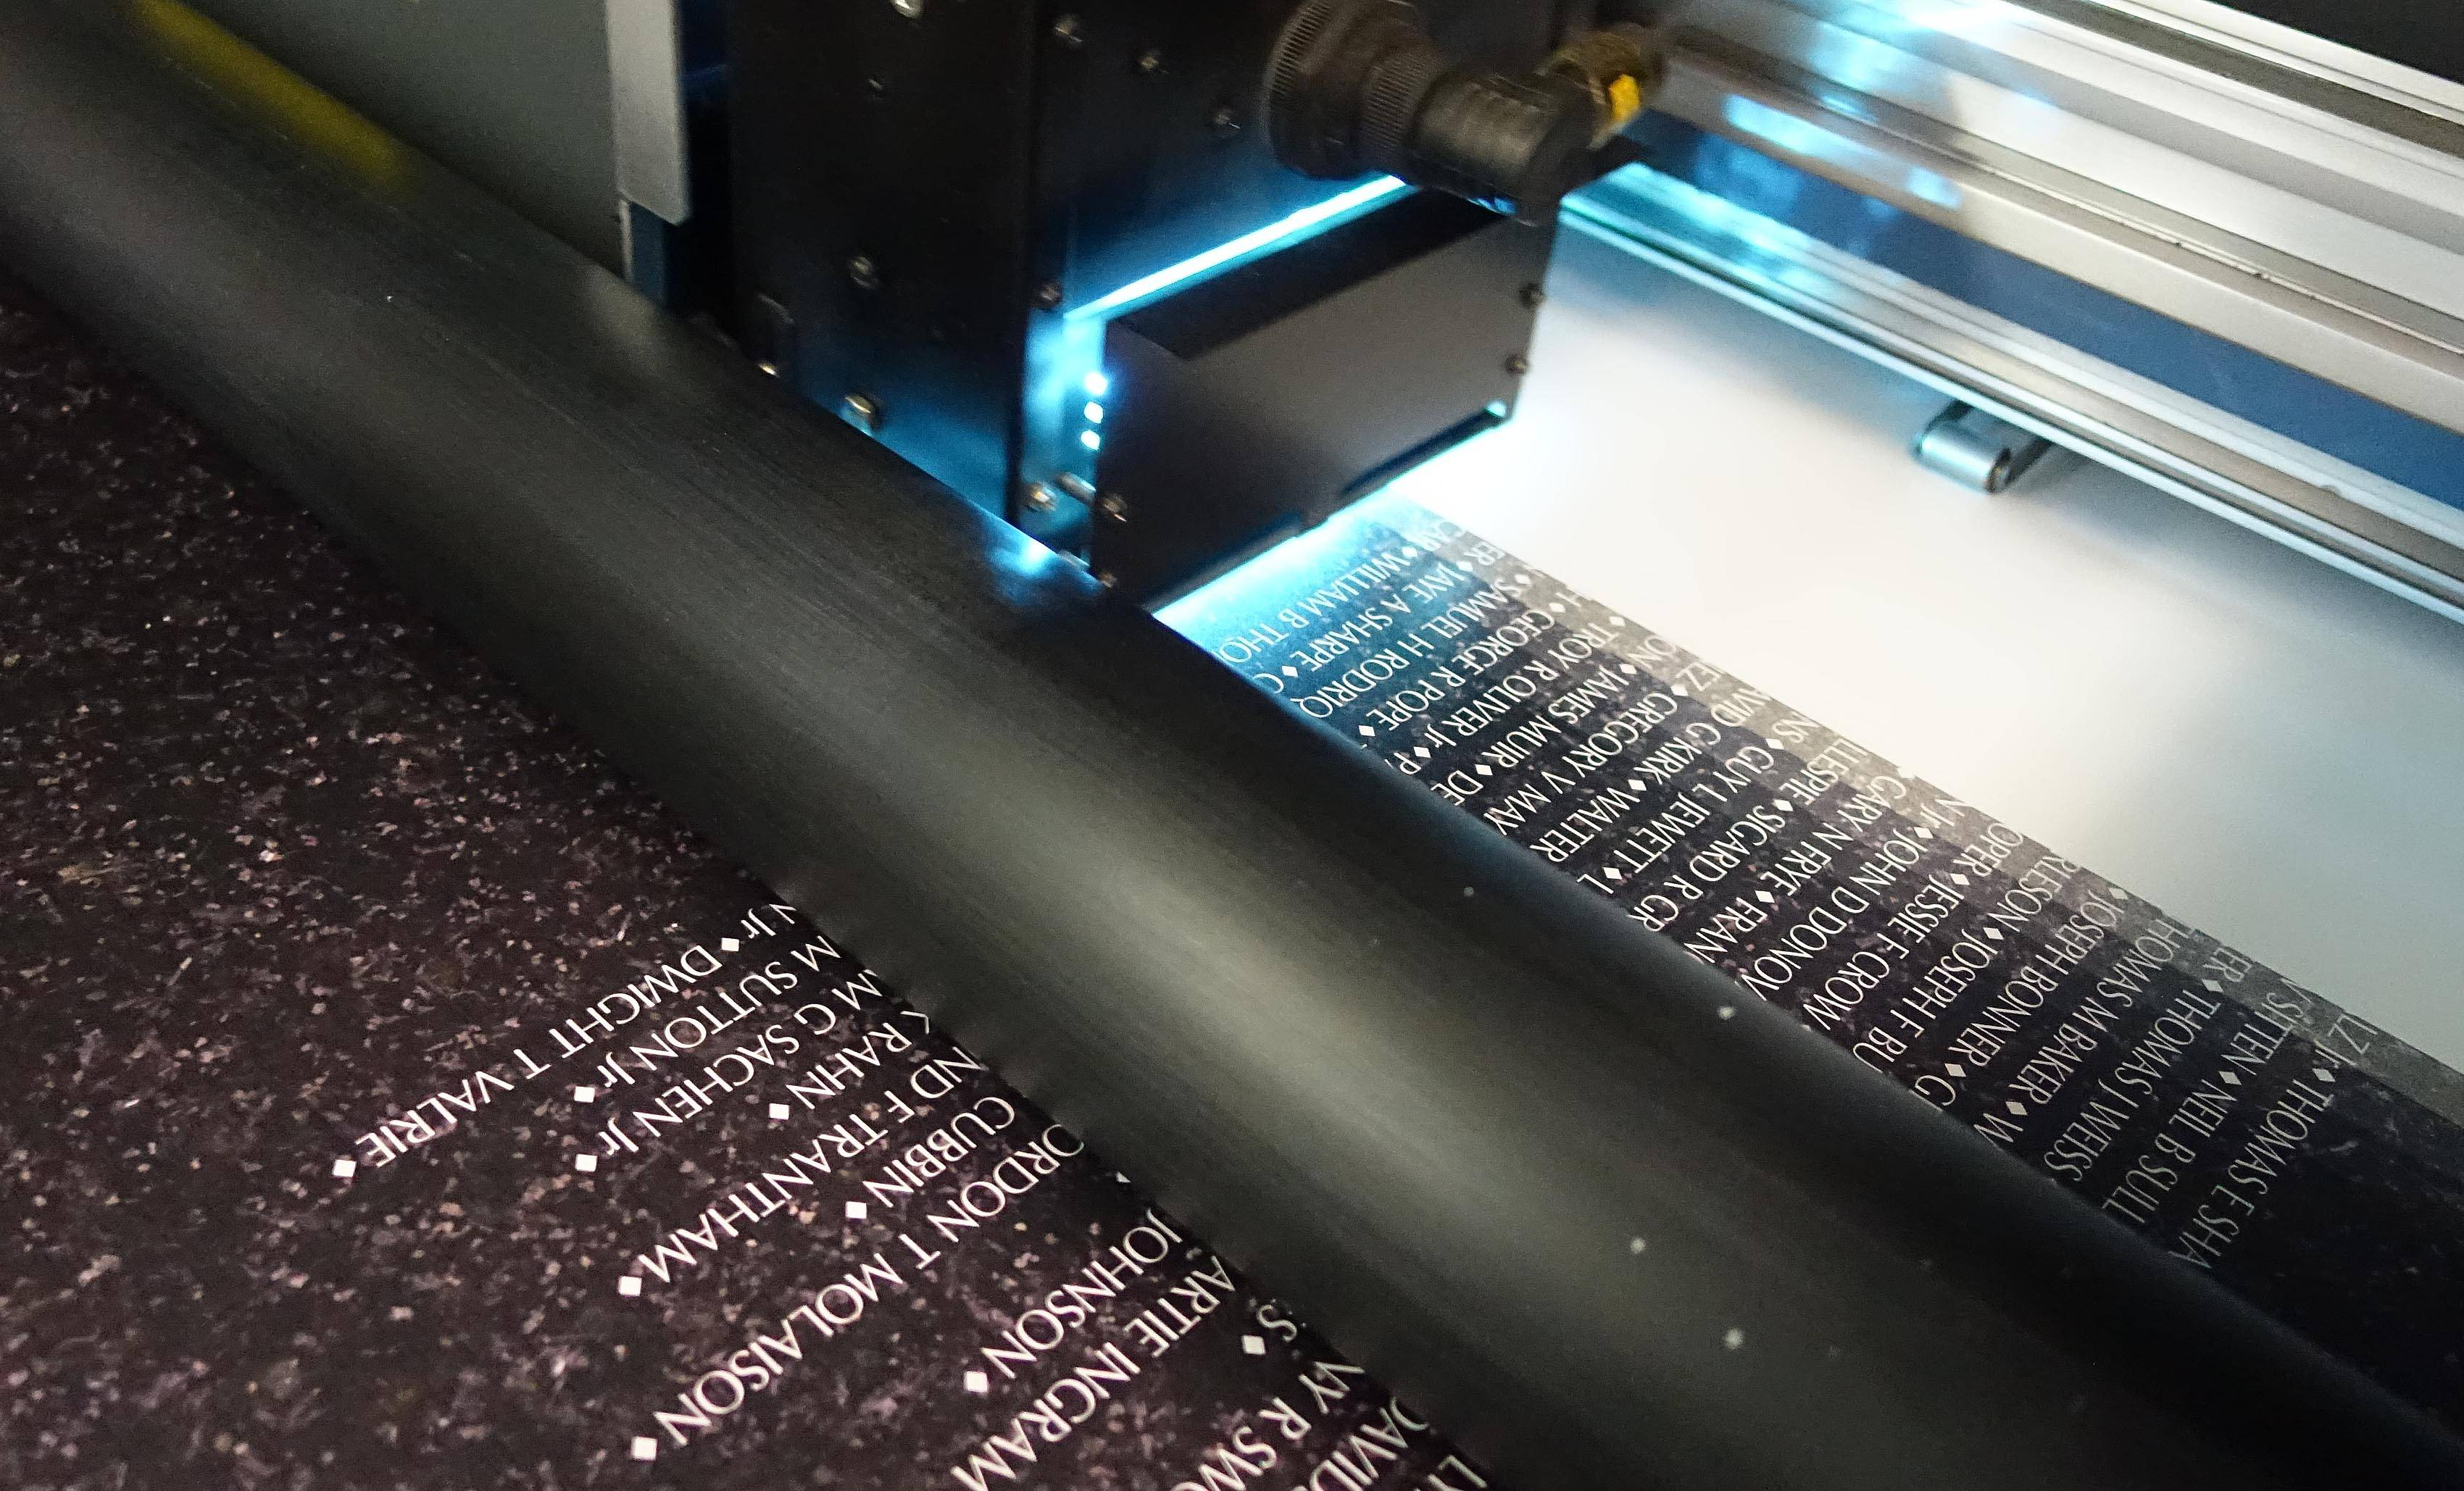 Blooming Color's printing center in Lombard uses a special inkjet printer with UV lights to print a replica of the Vietnam Wall memorial. The finished product will stand up to the elements when on display outdoors Nov. 6 through 12 at Naperville's Healing Field of Honor.